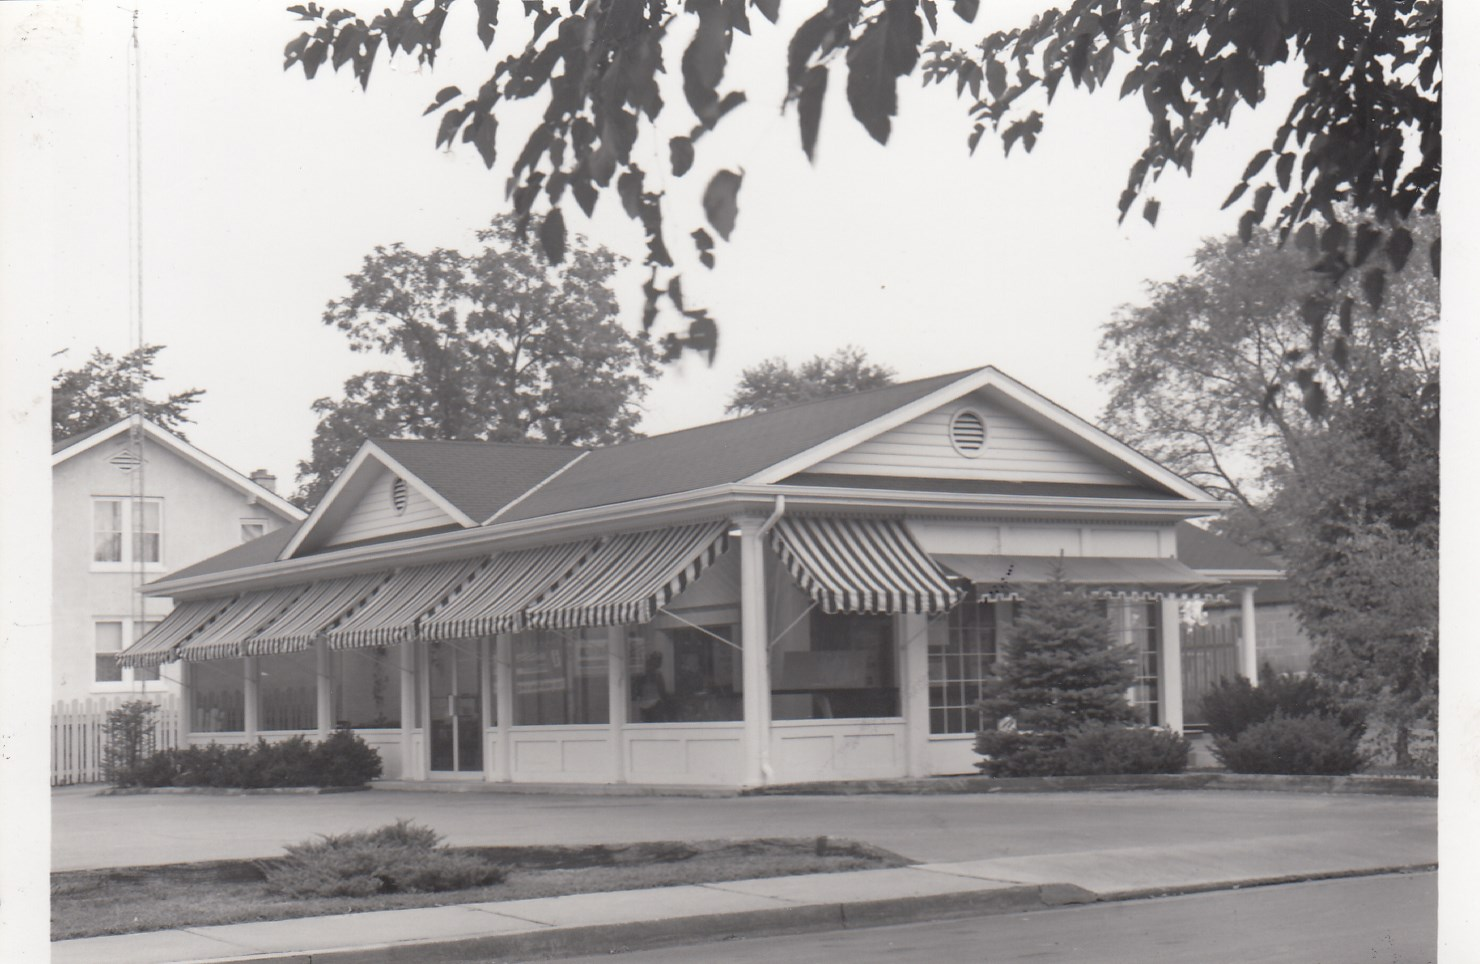 1971: 5th Street remodeled and added offices to the drive thru